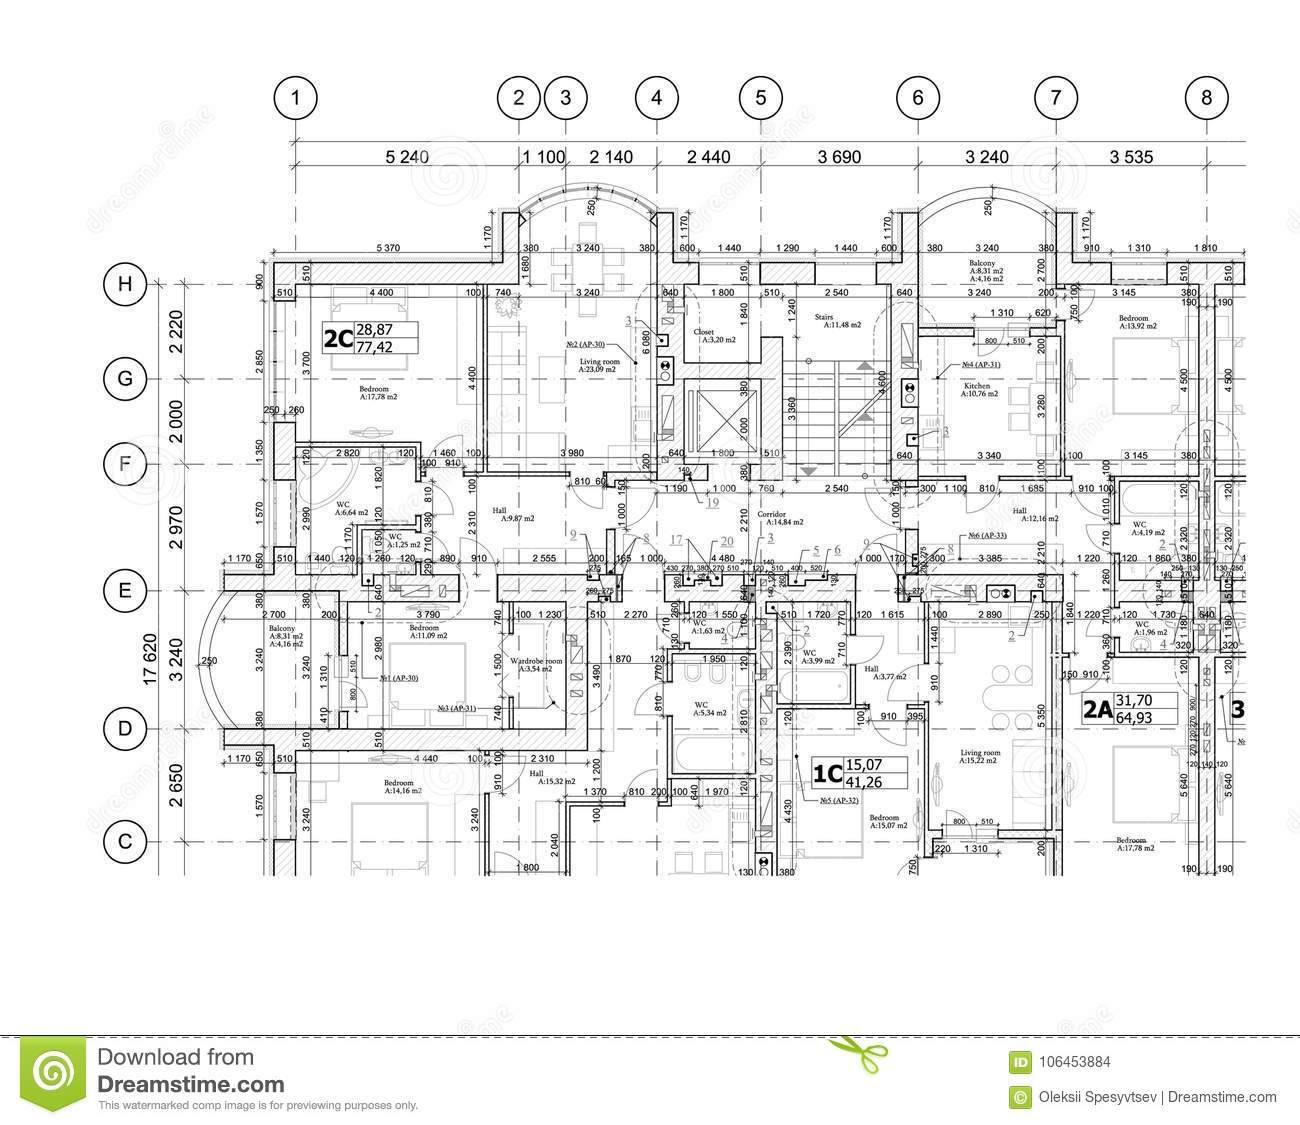 Part Of A Detailed Architectural Plan, Floor Plan, Layout